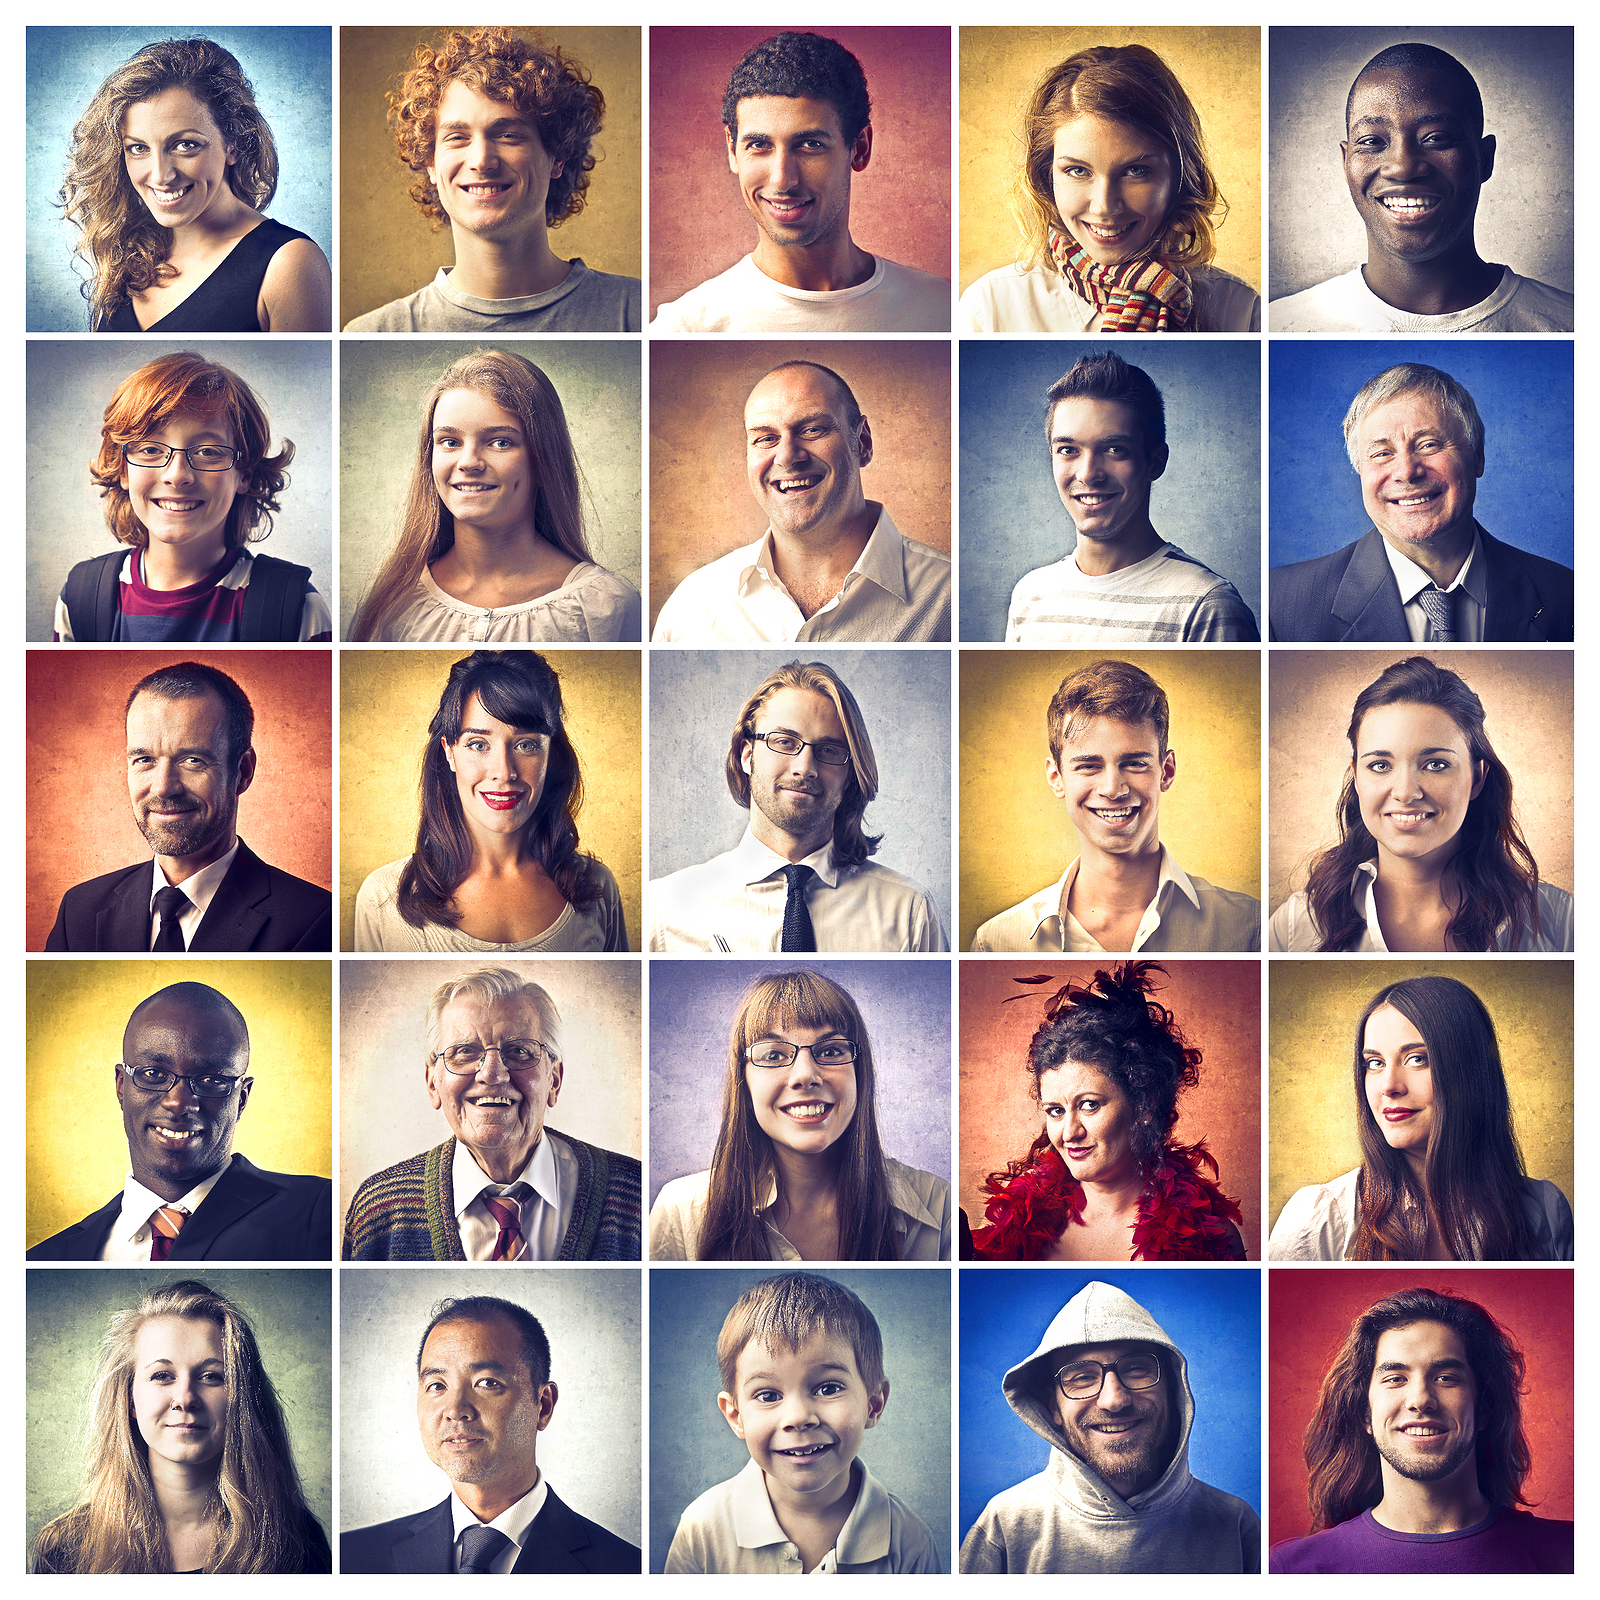 How Diverse is Your Marketing Communications Program?